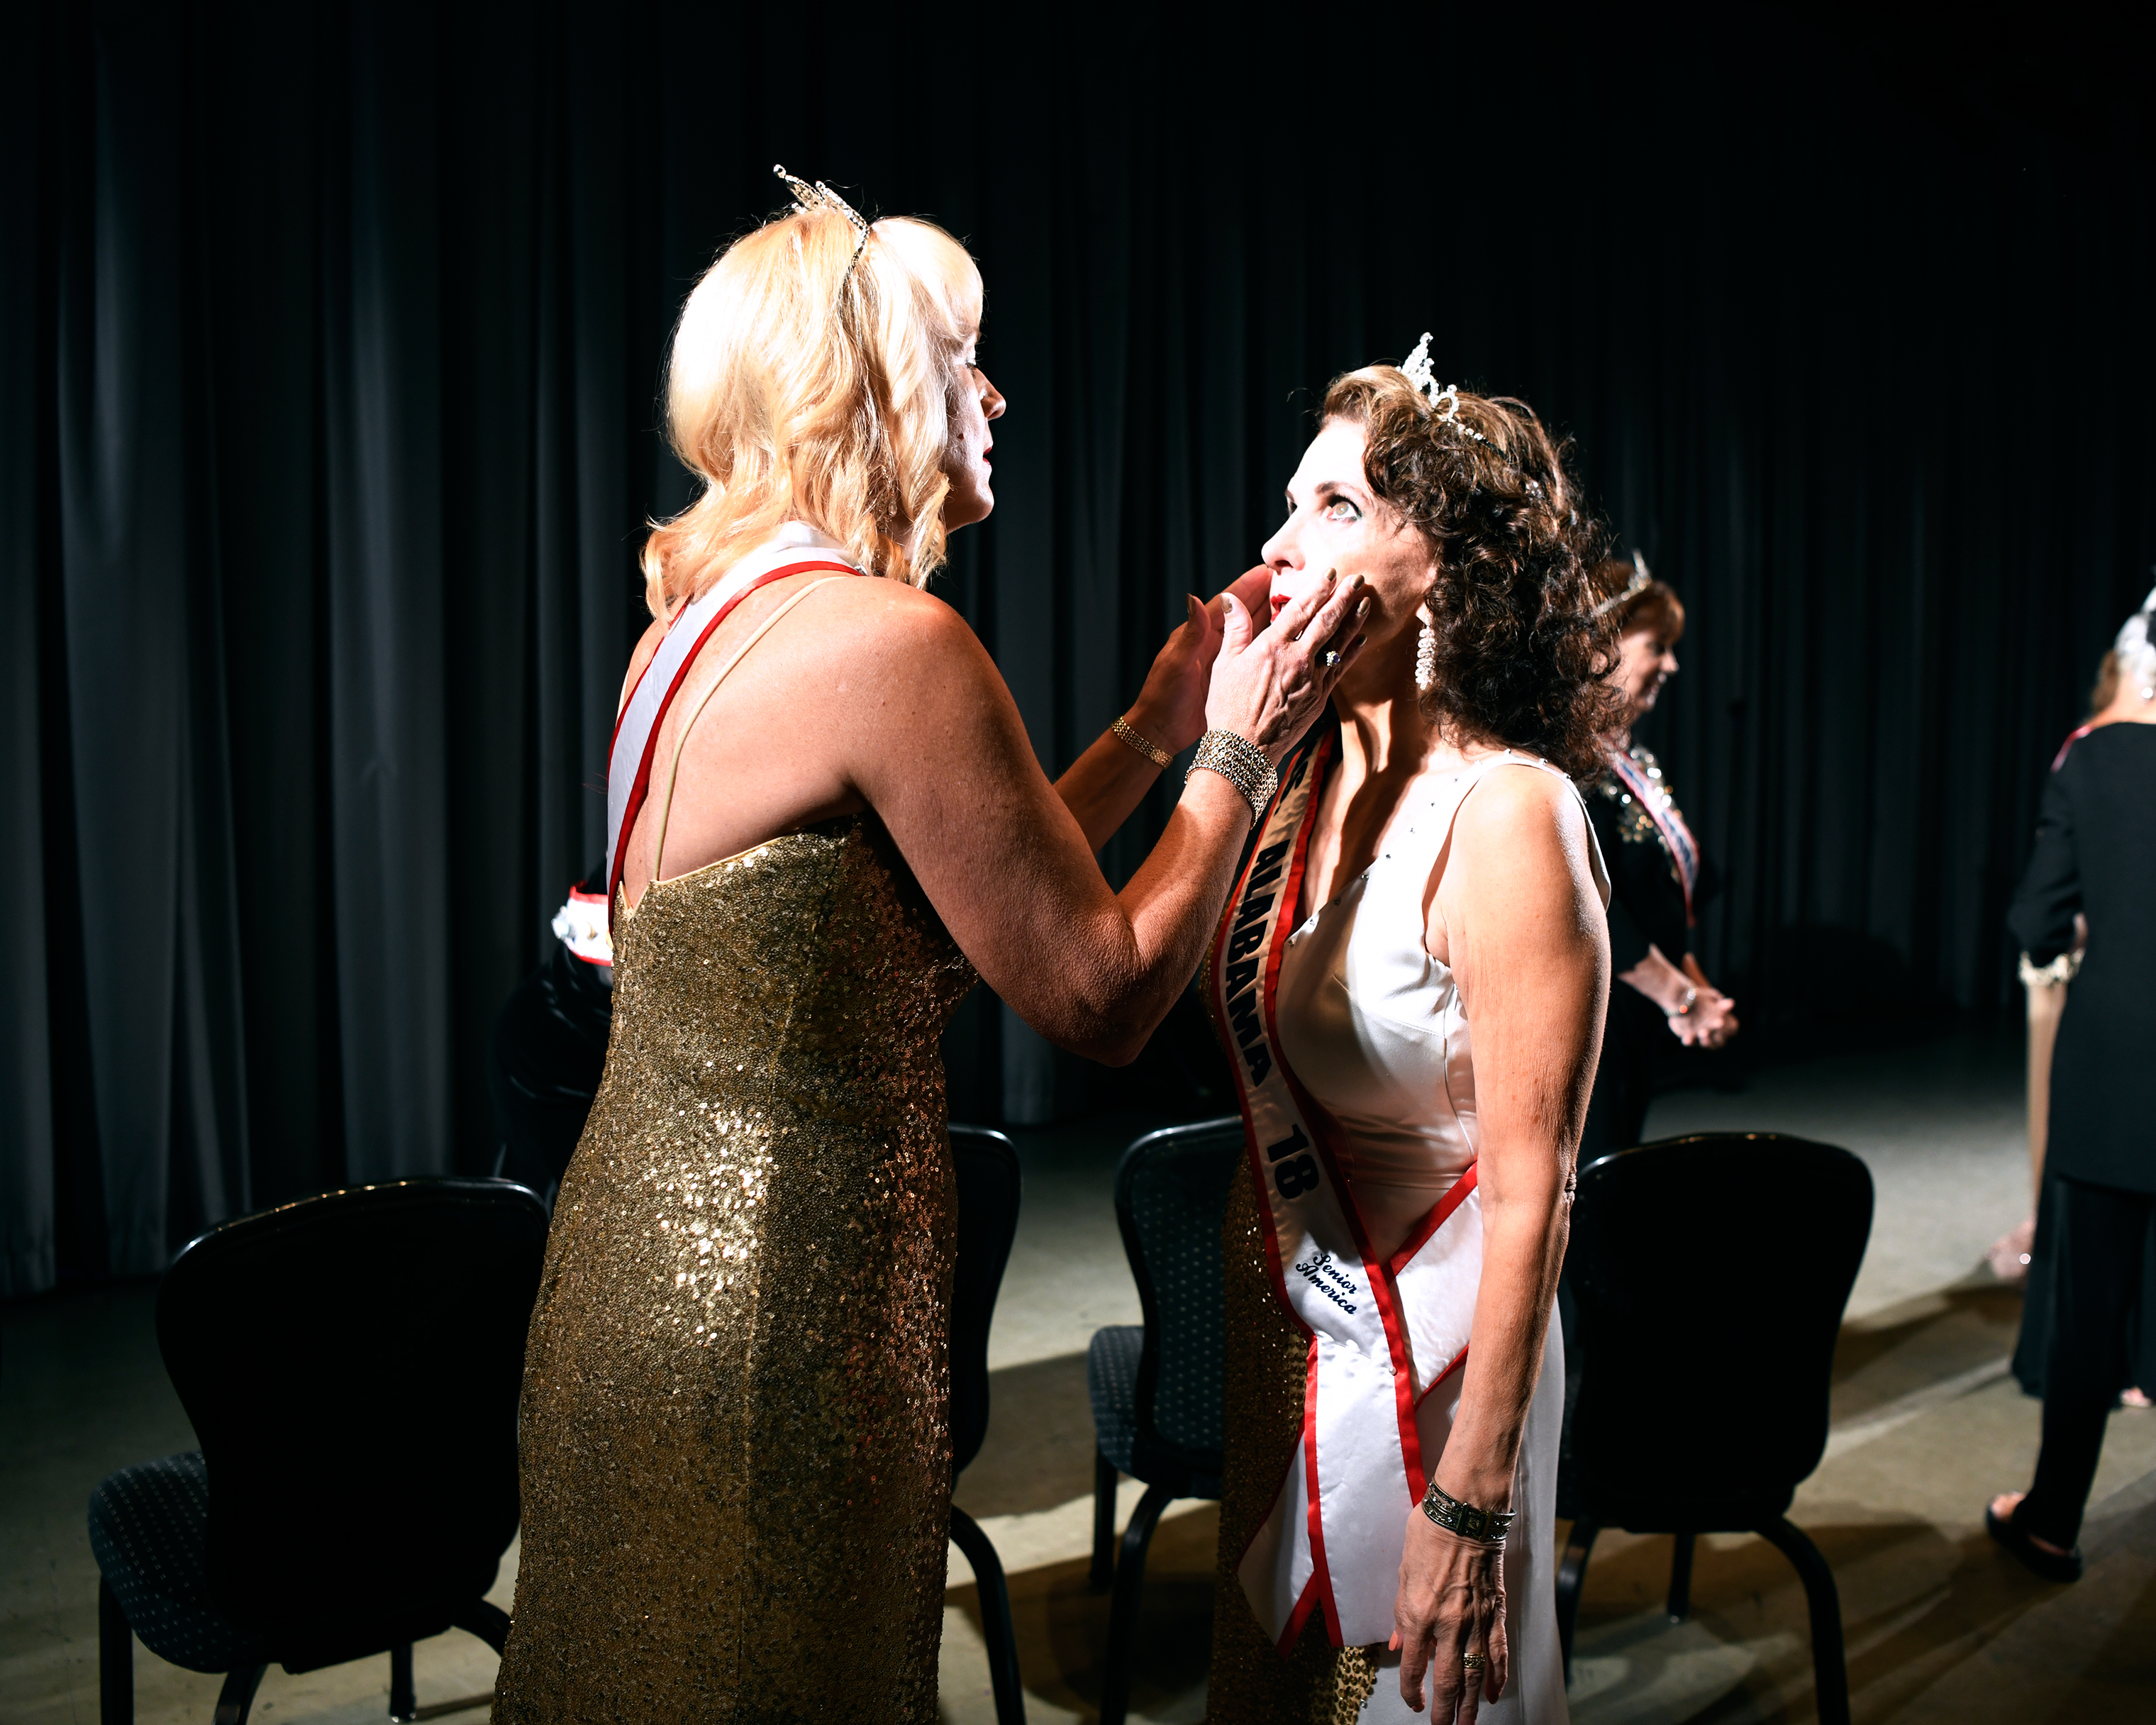 Kimberly Albrecht, Ms. Illinois, left, and Georgia Lee, Ms. Alabama, touch-up each other's makeup before a group photo.